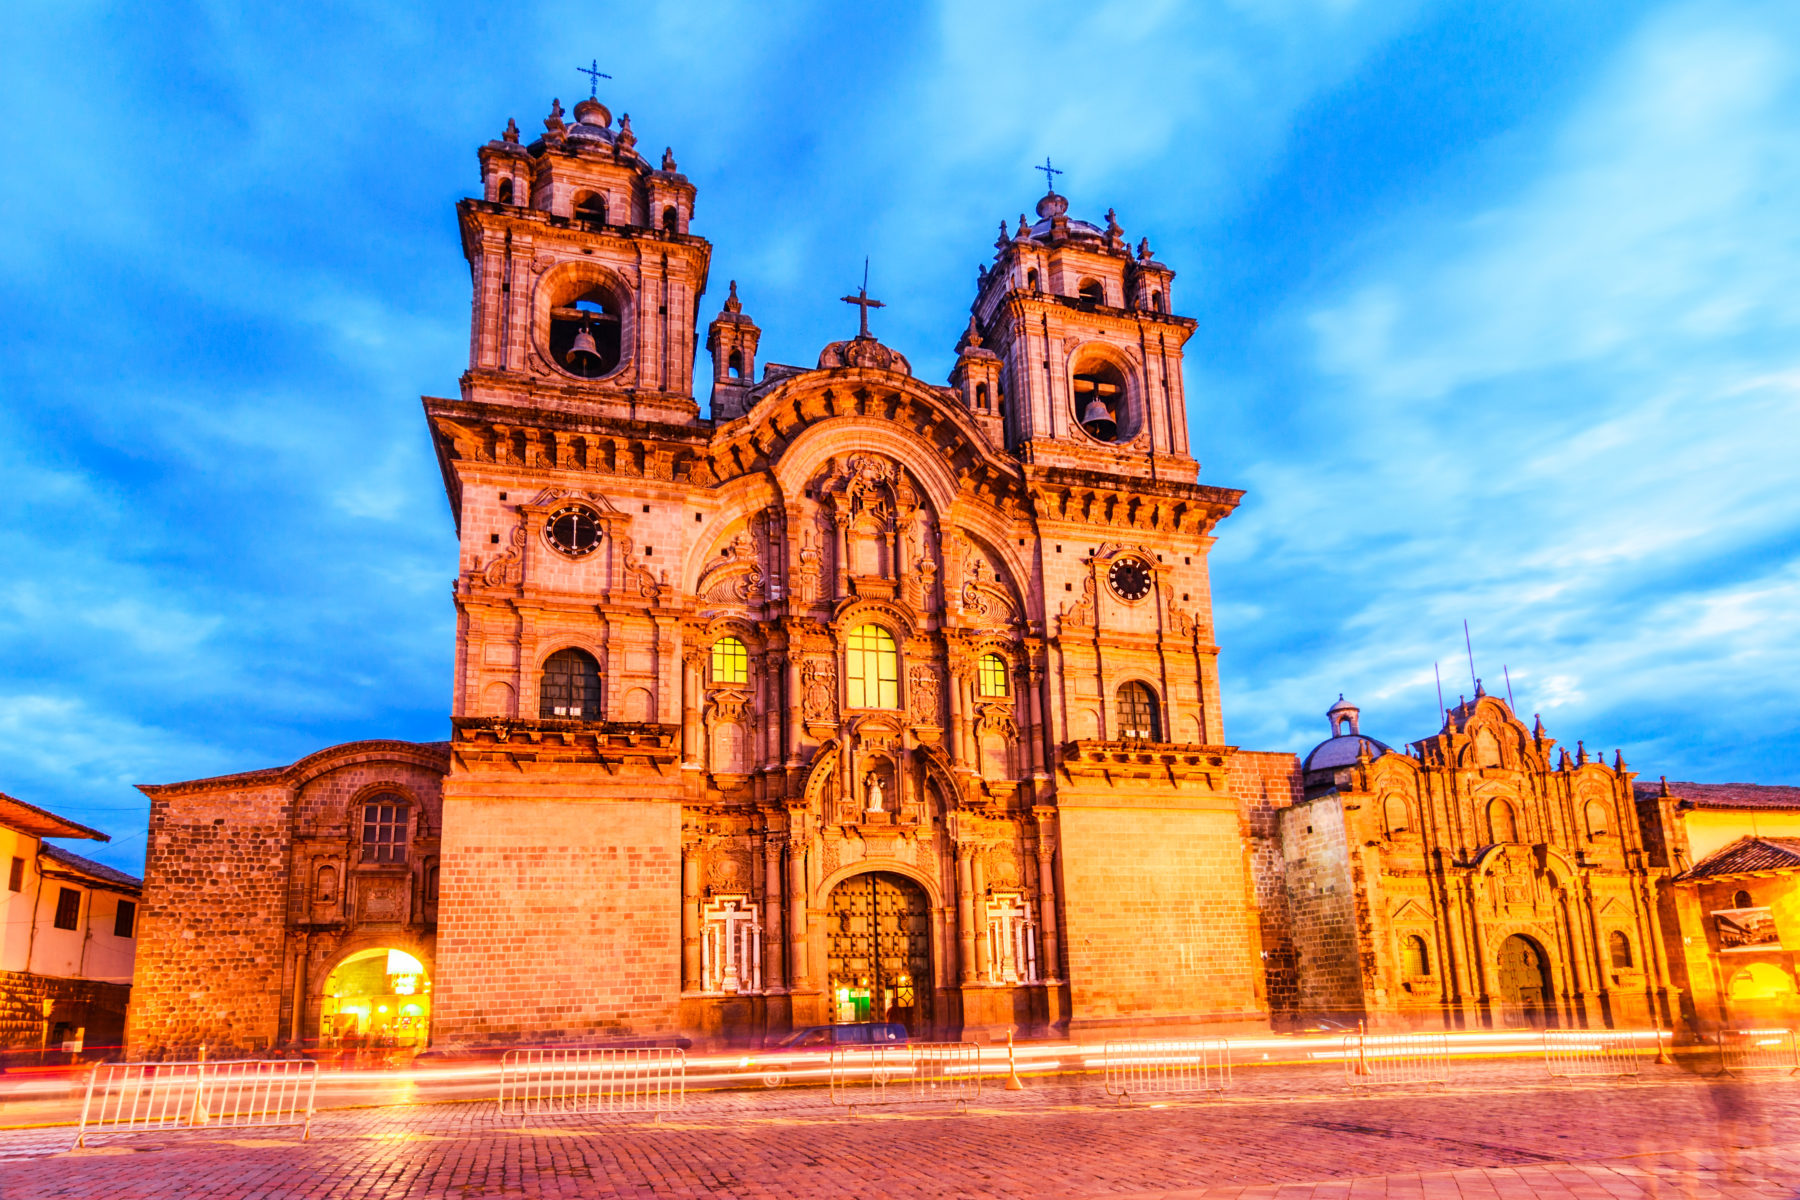 The ornate Cusco Cathedral in Peru